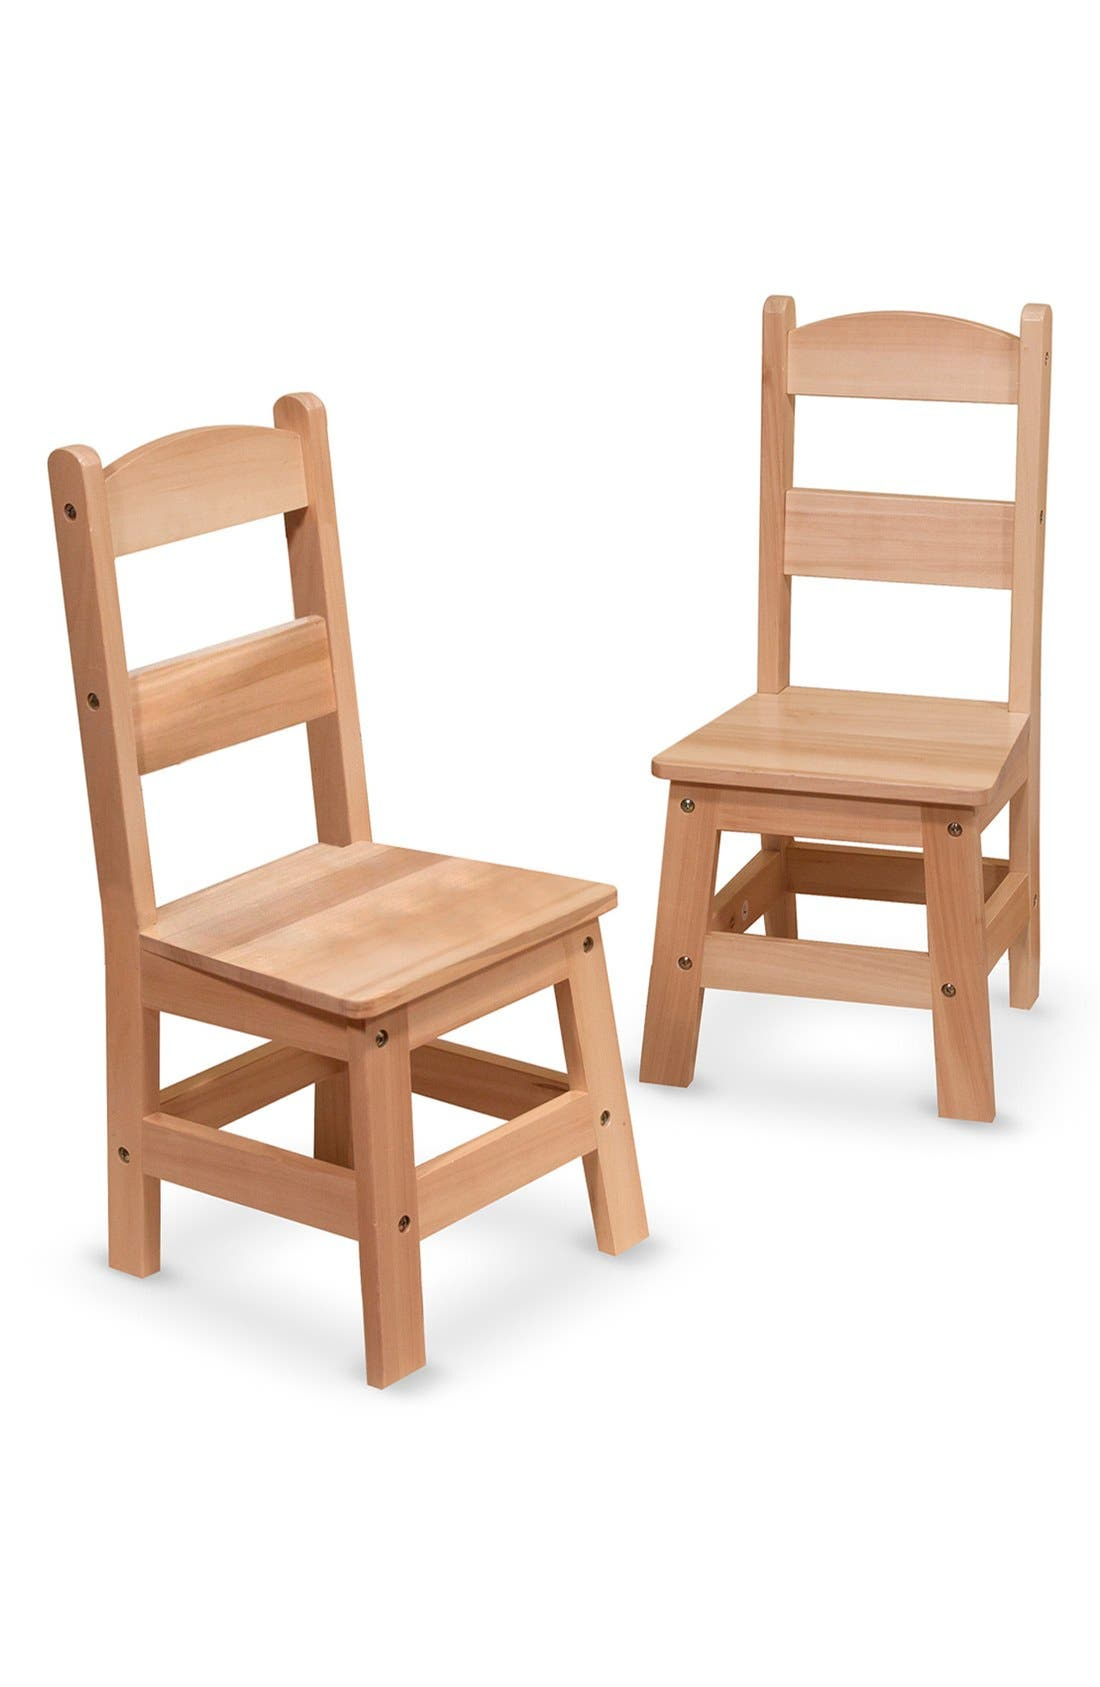 Main Image - Melissa & Doug Wooden Chairs (Set of 2)